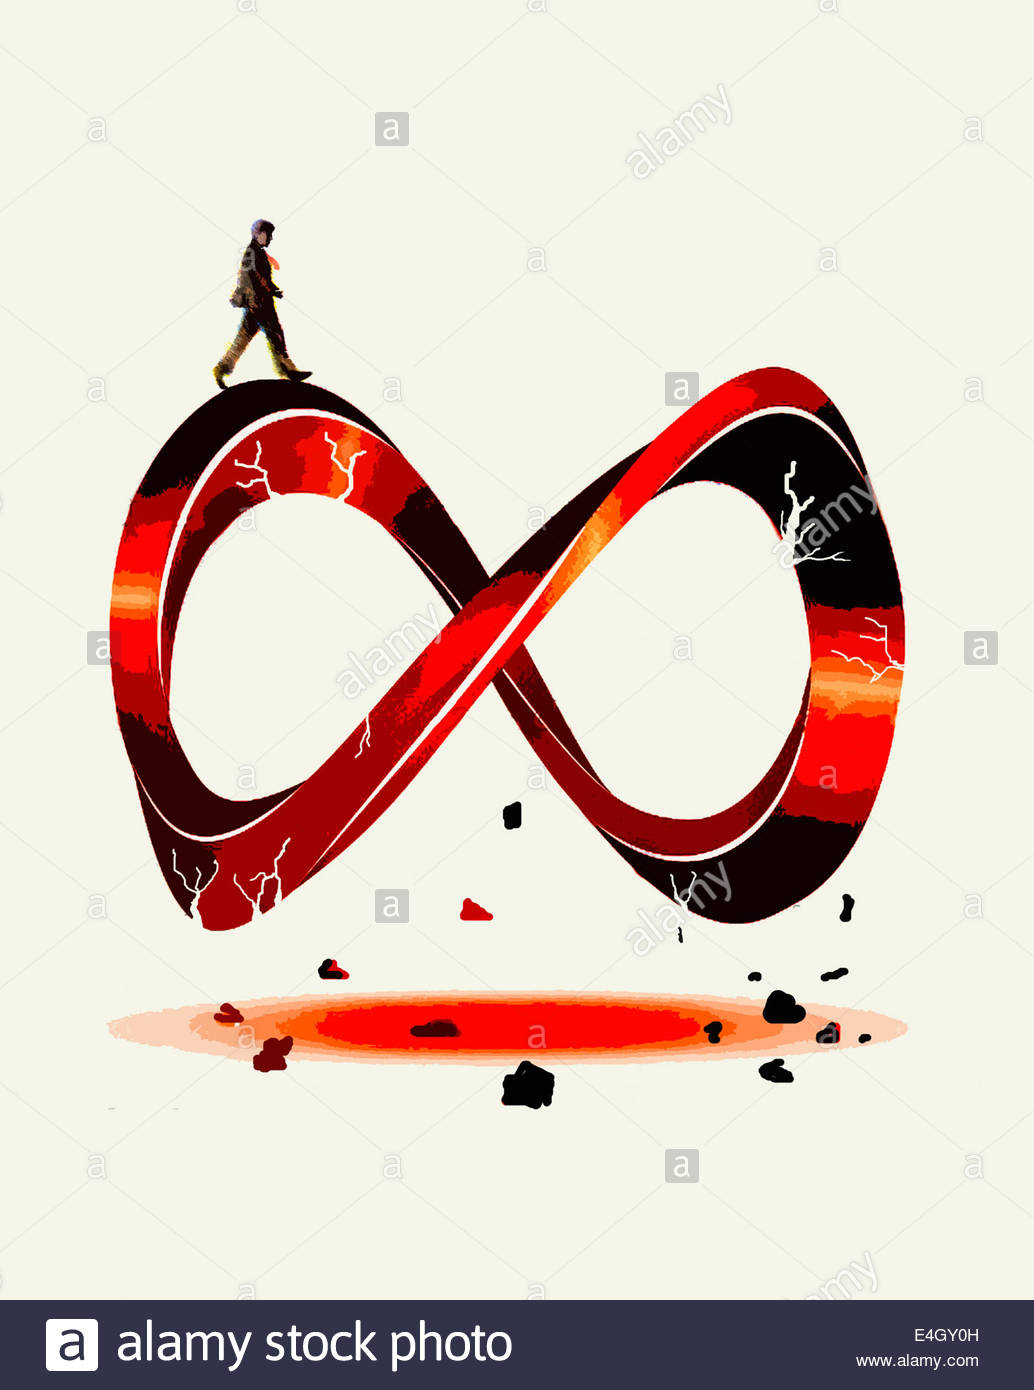 Infinity Symbol Stock Photos Infinity Symbol Stock Images Alamy